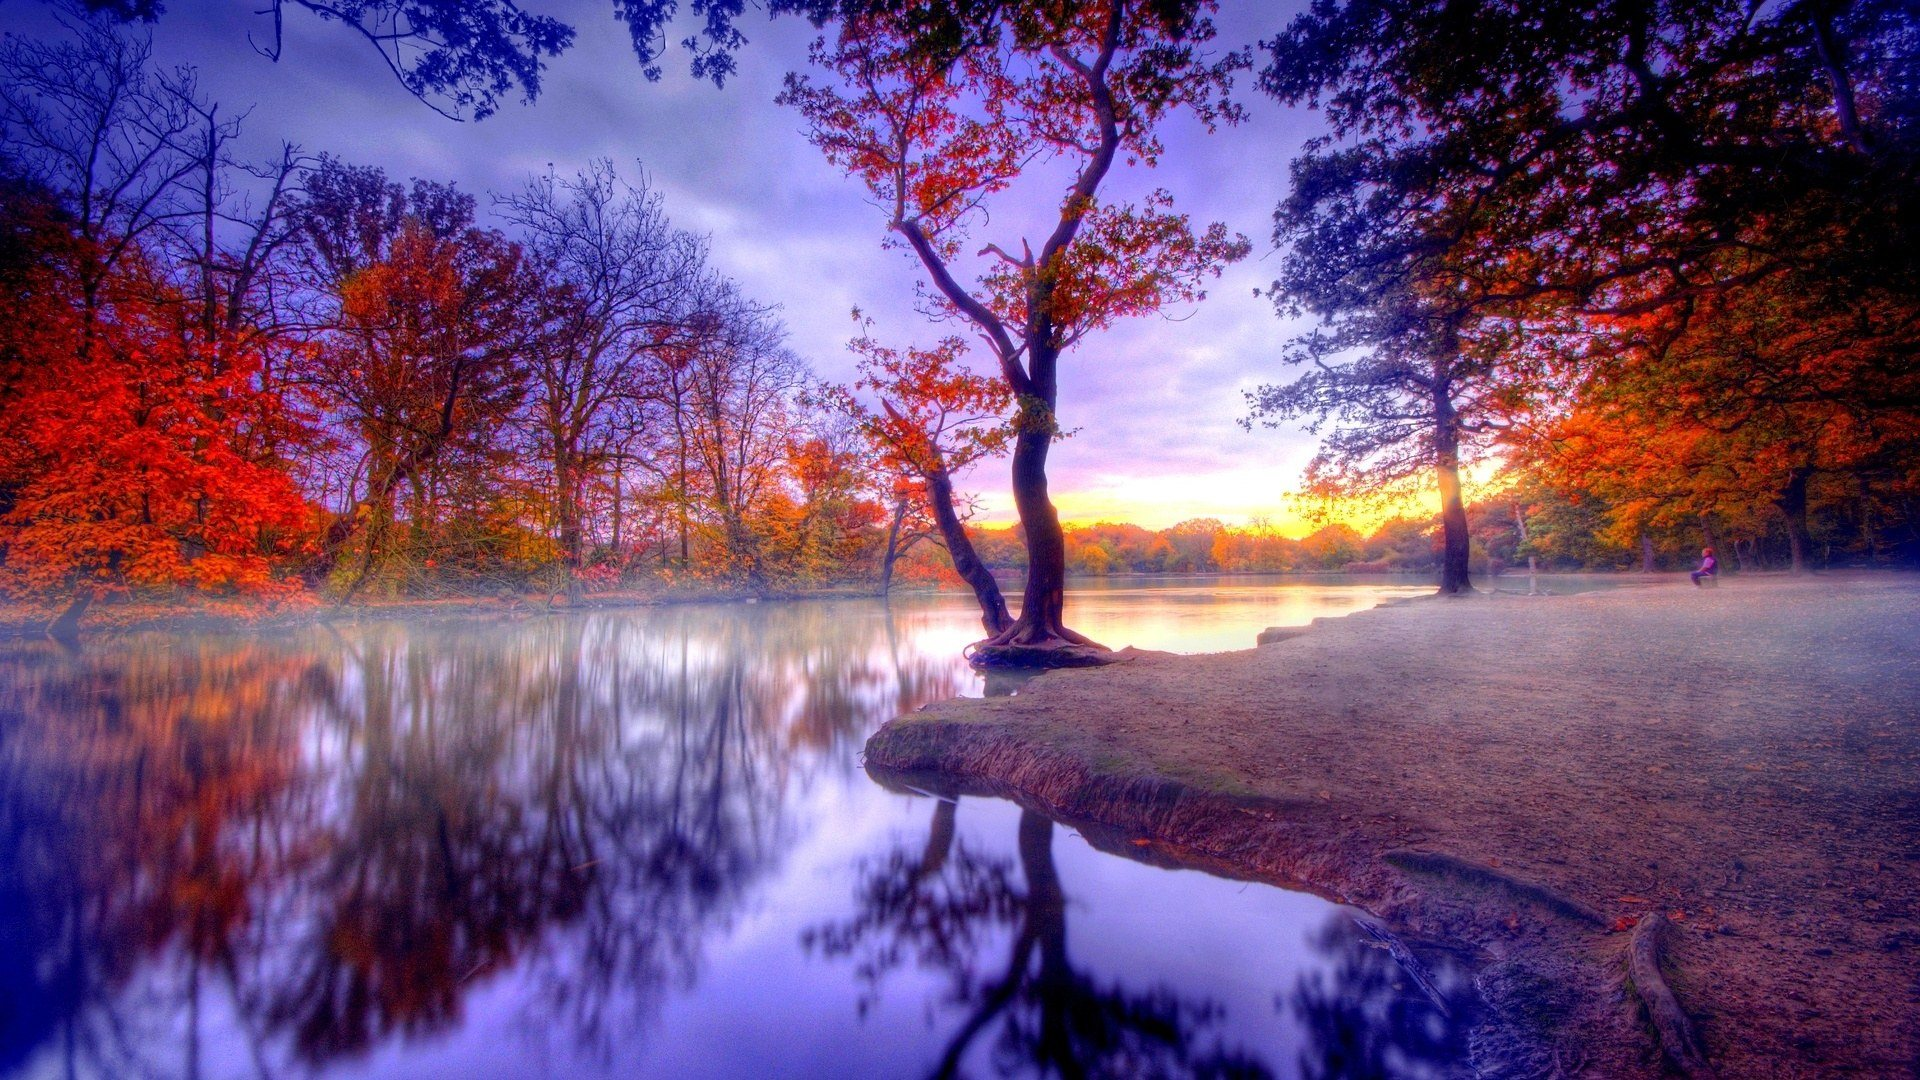 Autumn Landscape Download 1920x1080